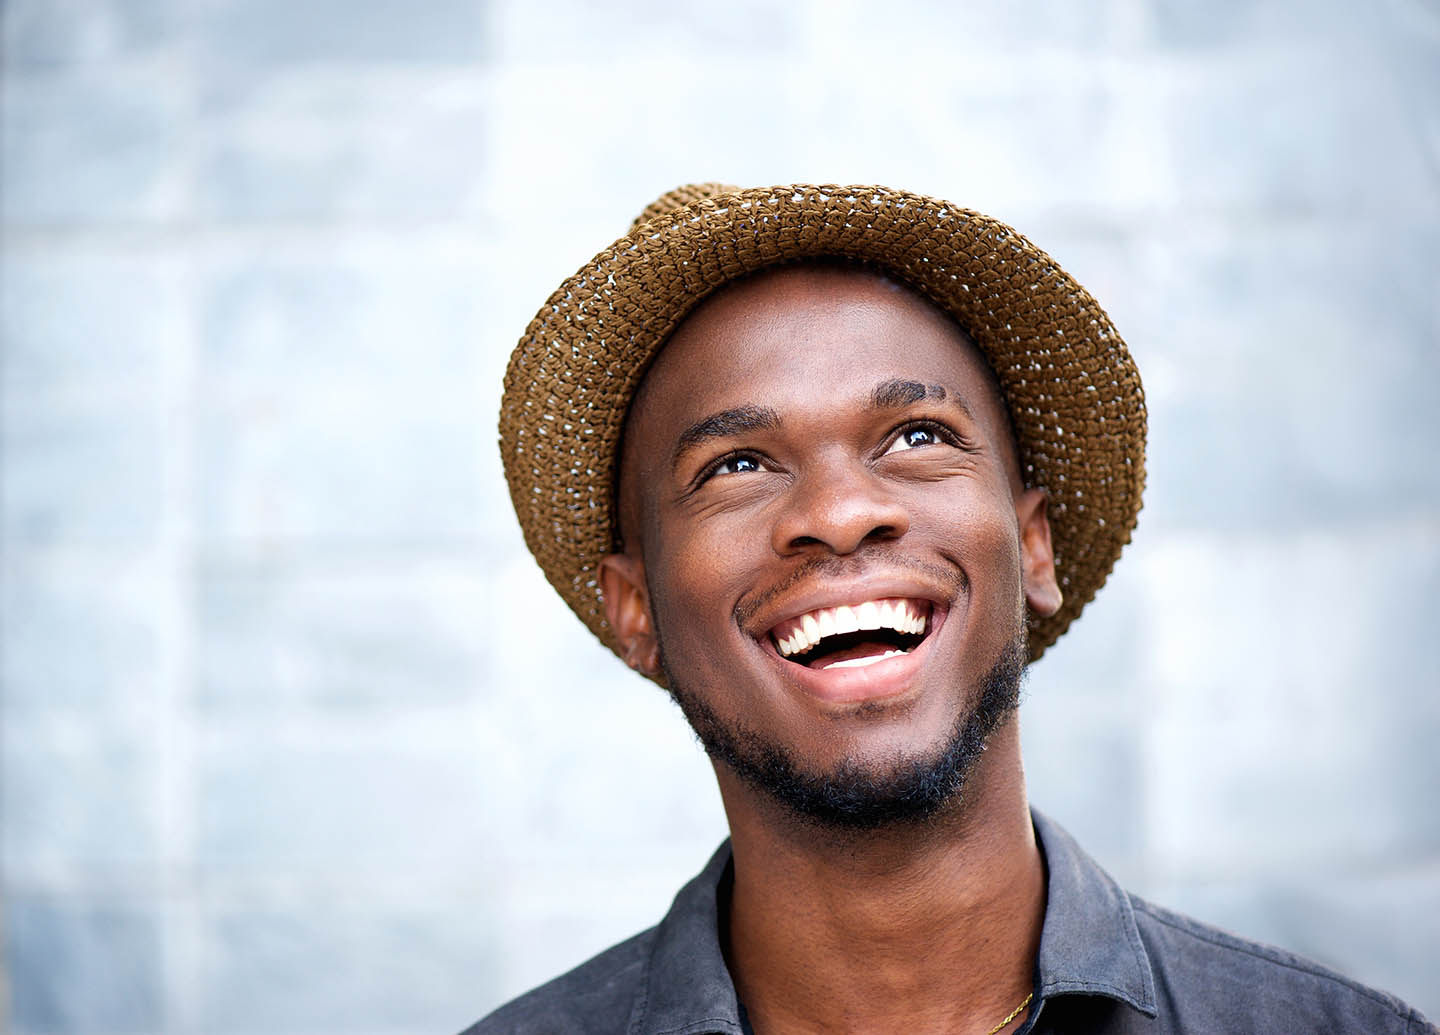 man smiling wearing hat